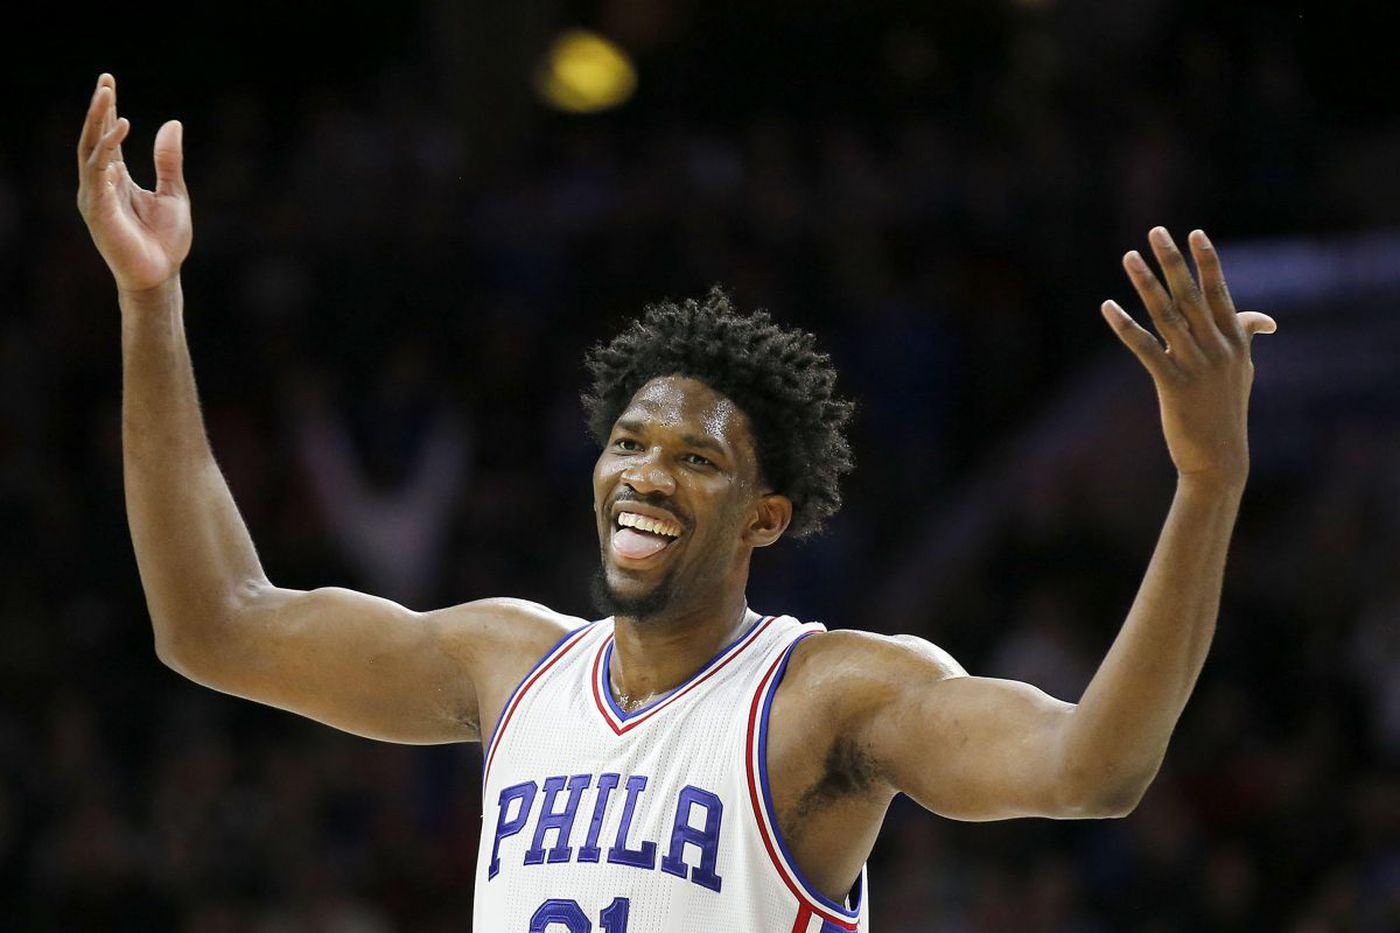 Fans ask Embiid to be their dad, buy them Shirley Temples and not get hurt